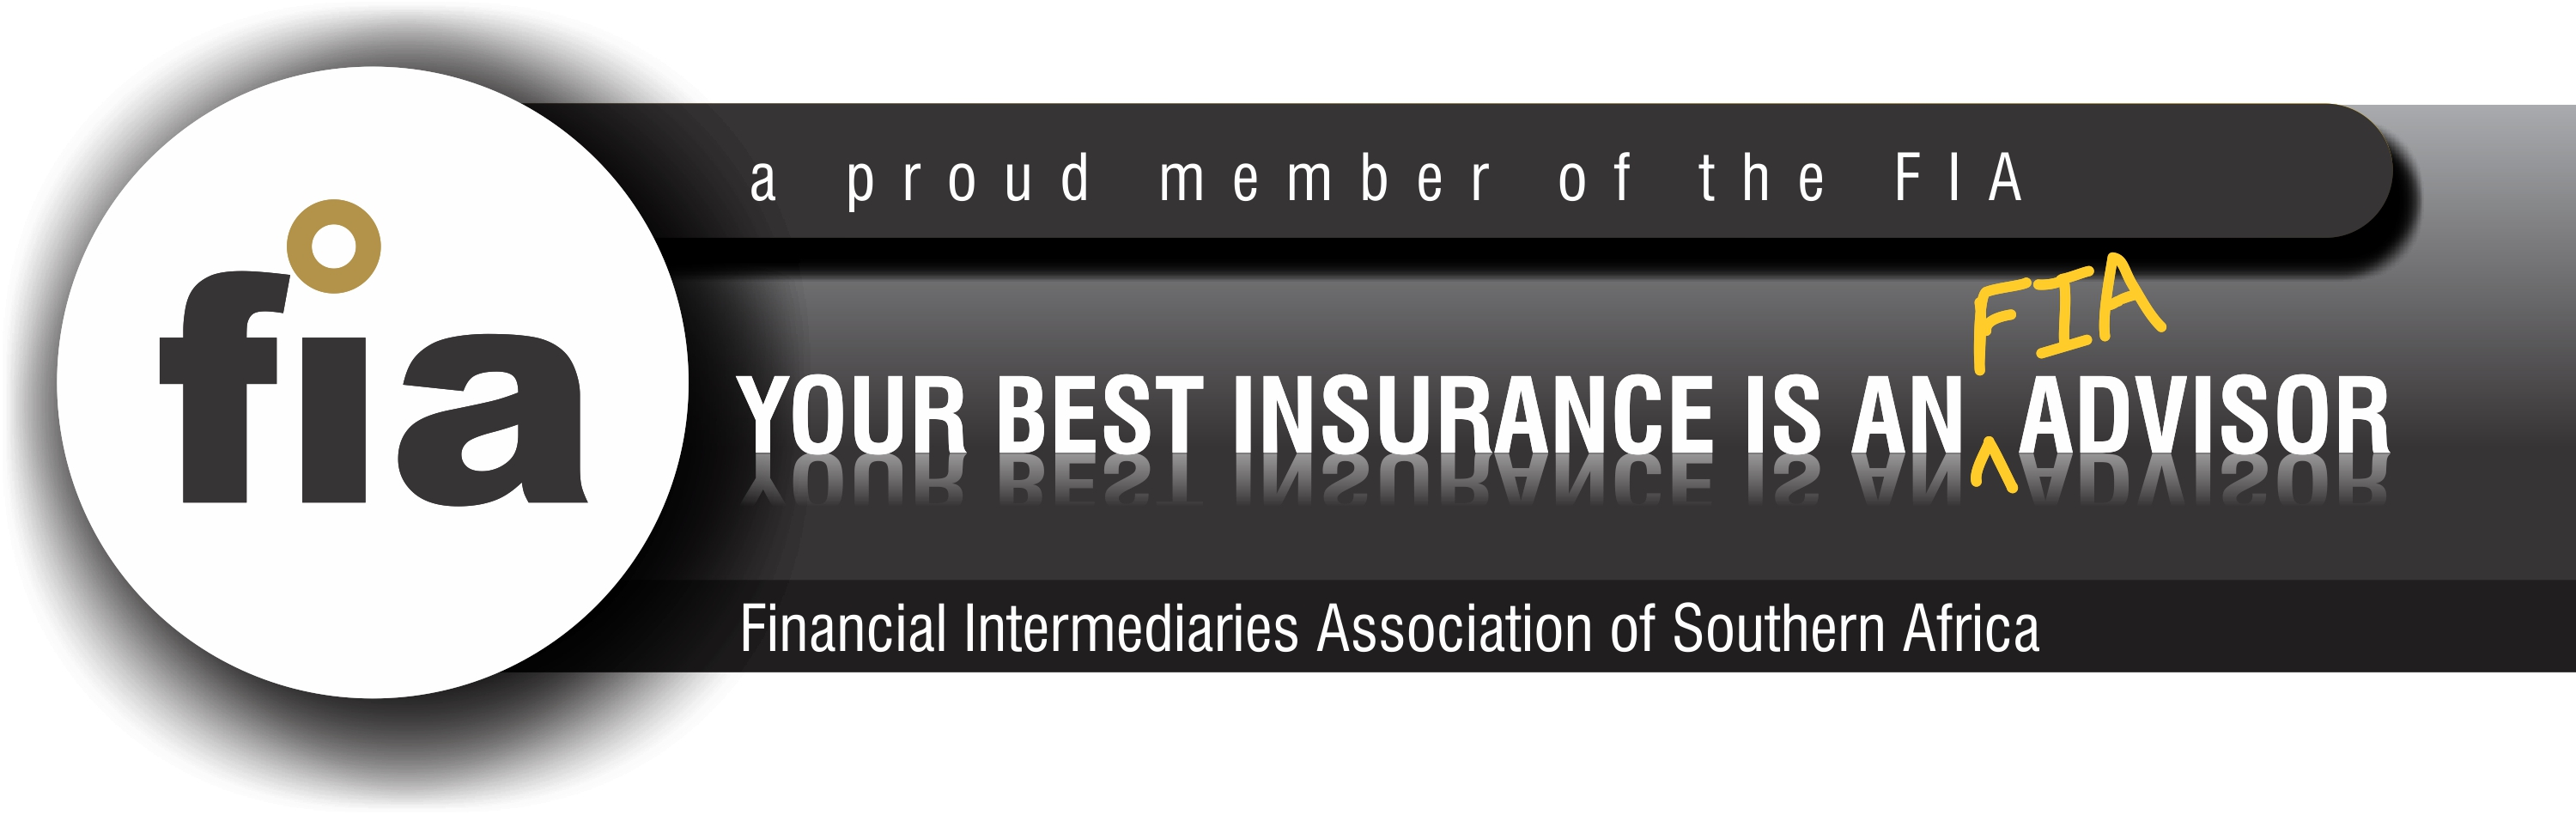 Financial Intermediaries Association of Southern Africa